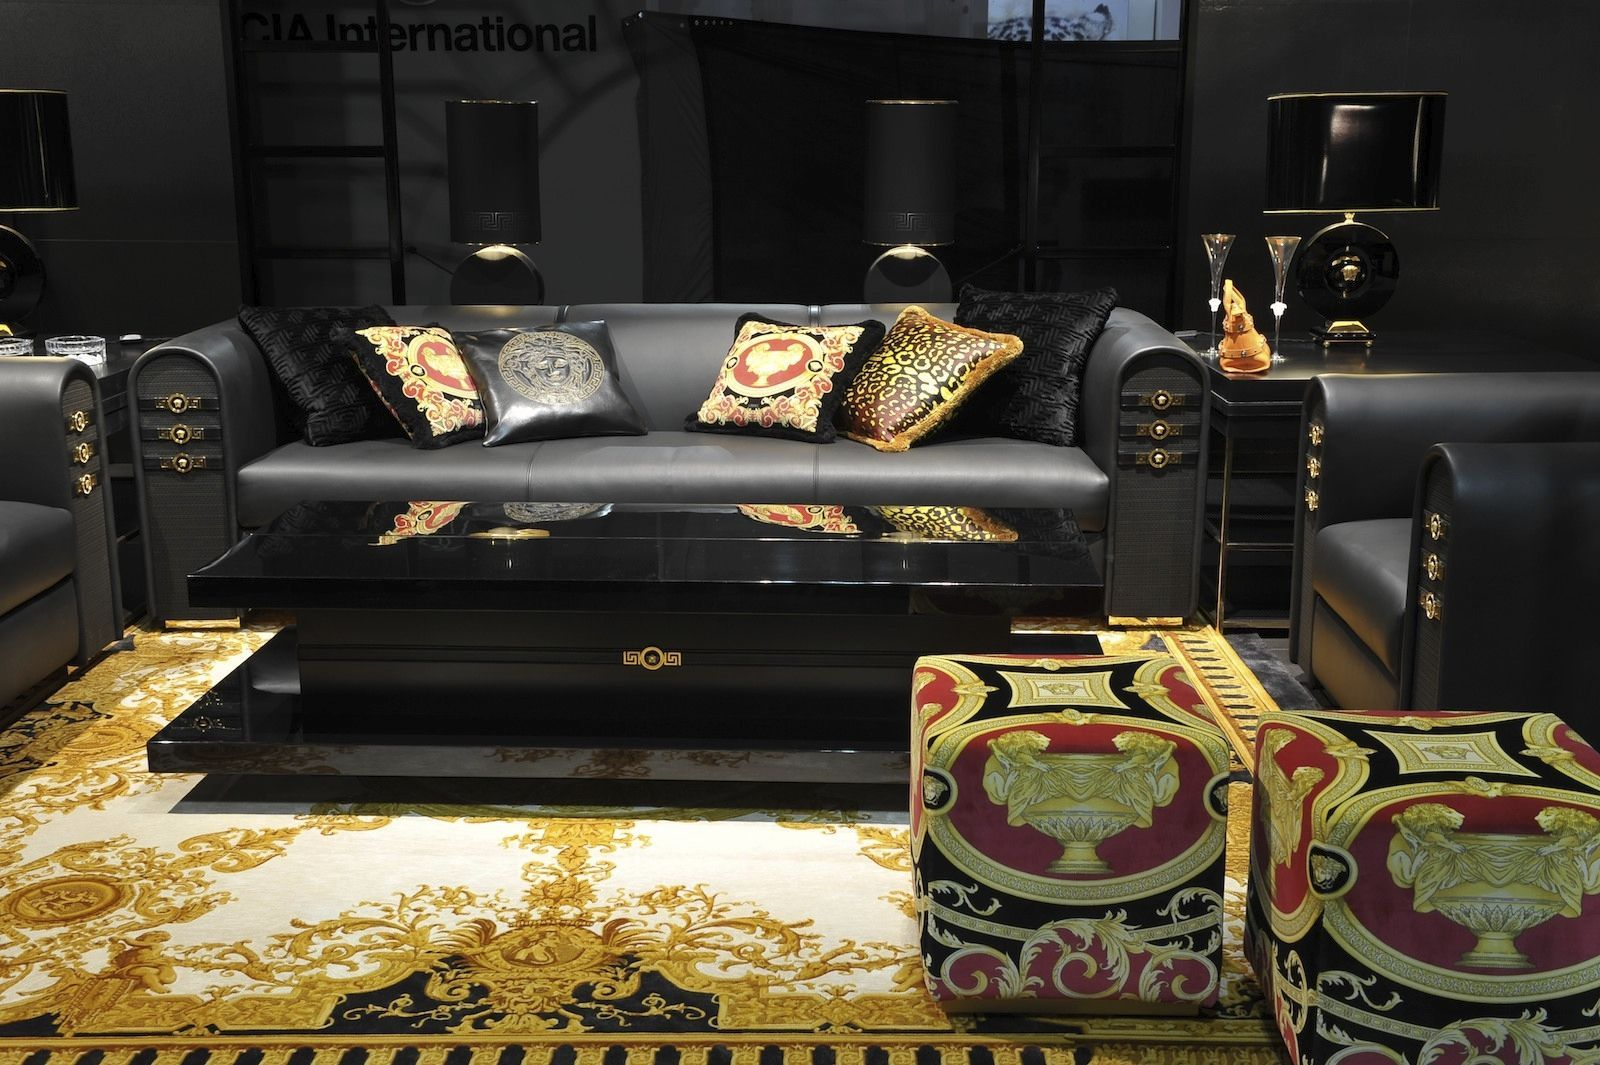 Versace Living Room Furniture Versace Home Collection 2014 Image3120 Versace Via Gesu